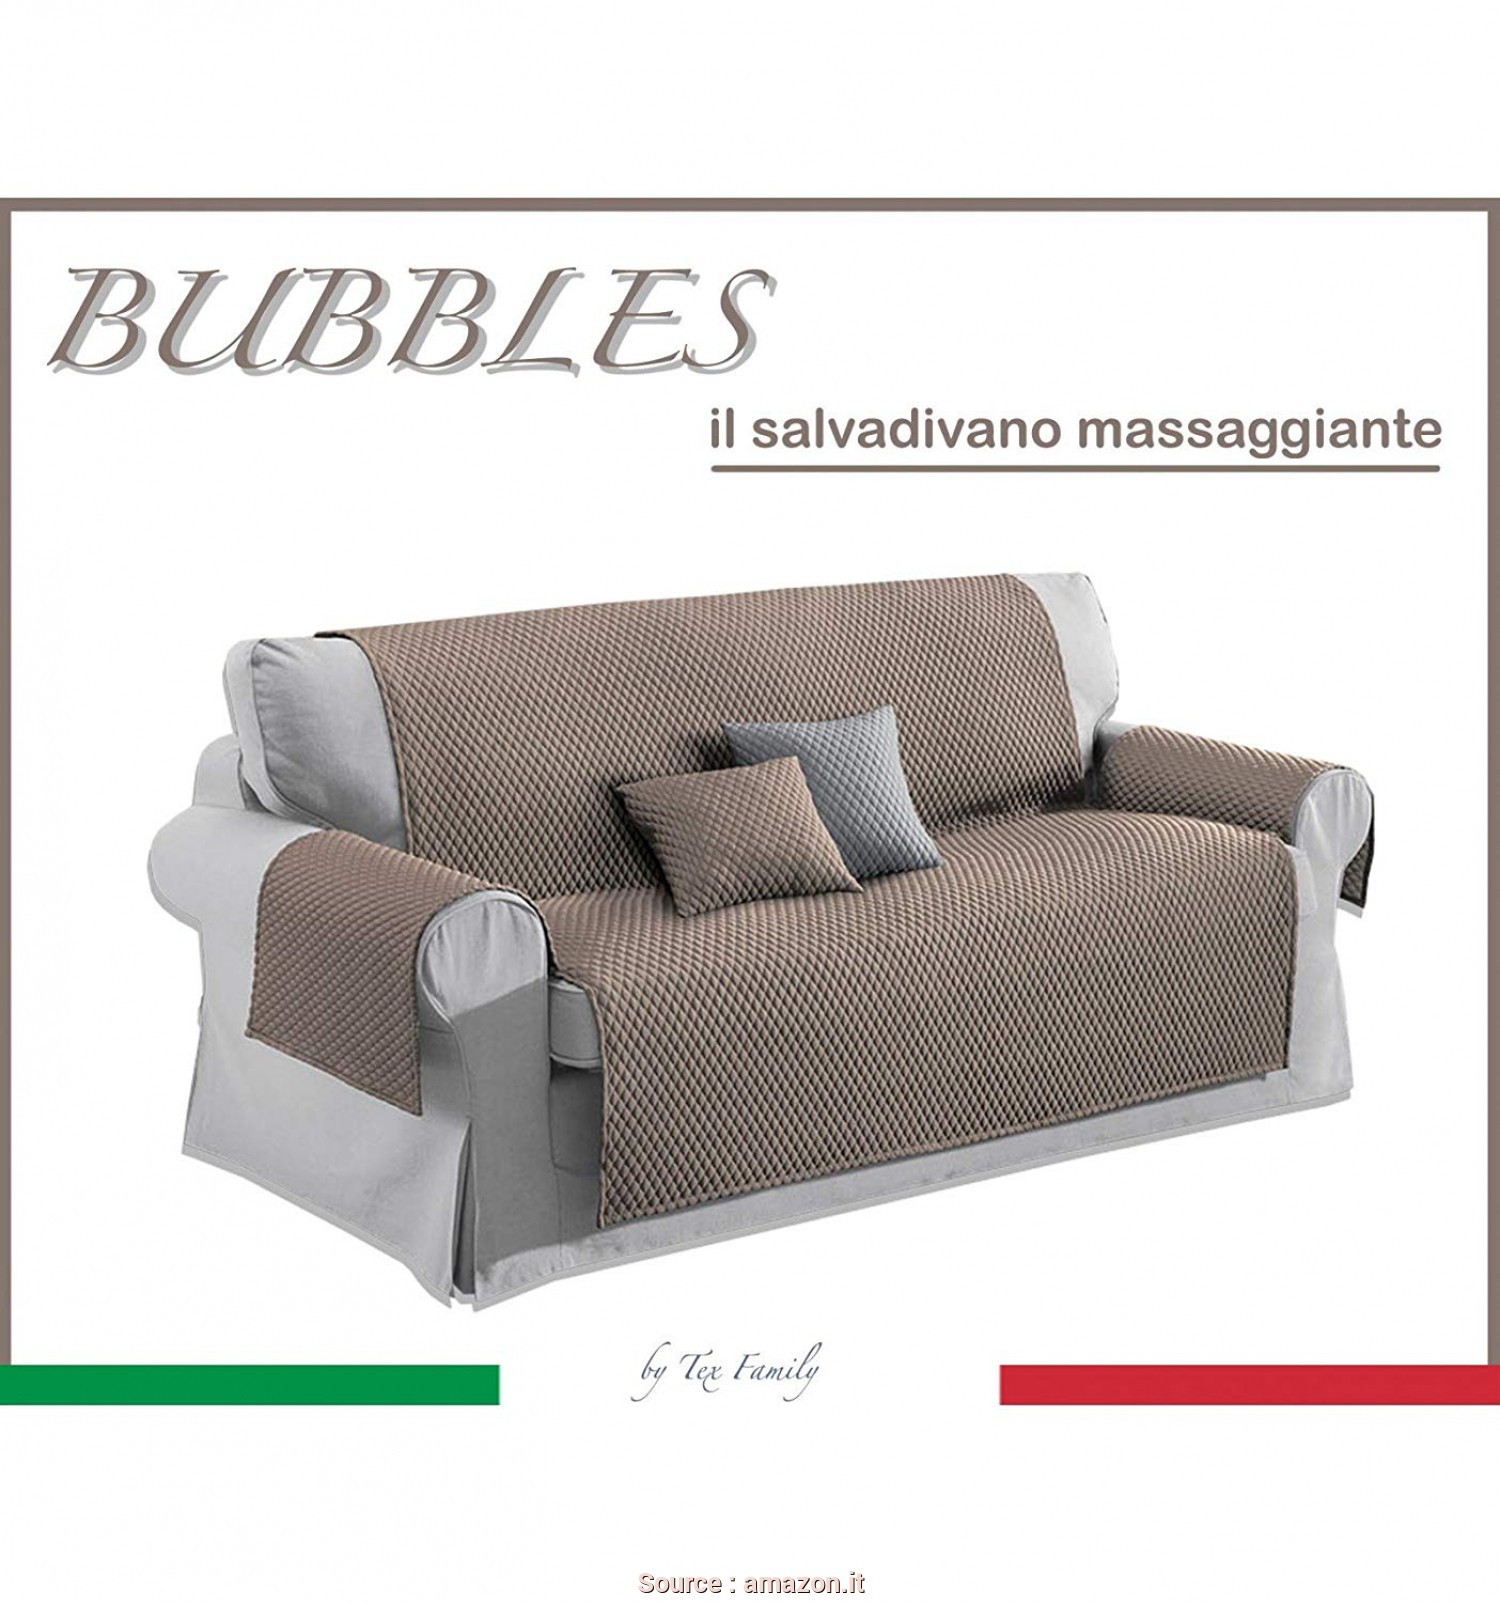 Copridivano Tortora, Loveable Tex Family COPRIDIVANO TR SALVADIVANO Bubbles Tortora AD Effetto MASSAGGIANTE No Stiro, POSTI, 175: Amazon.It: Casa E Cucina